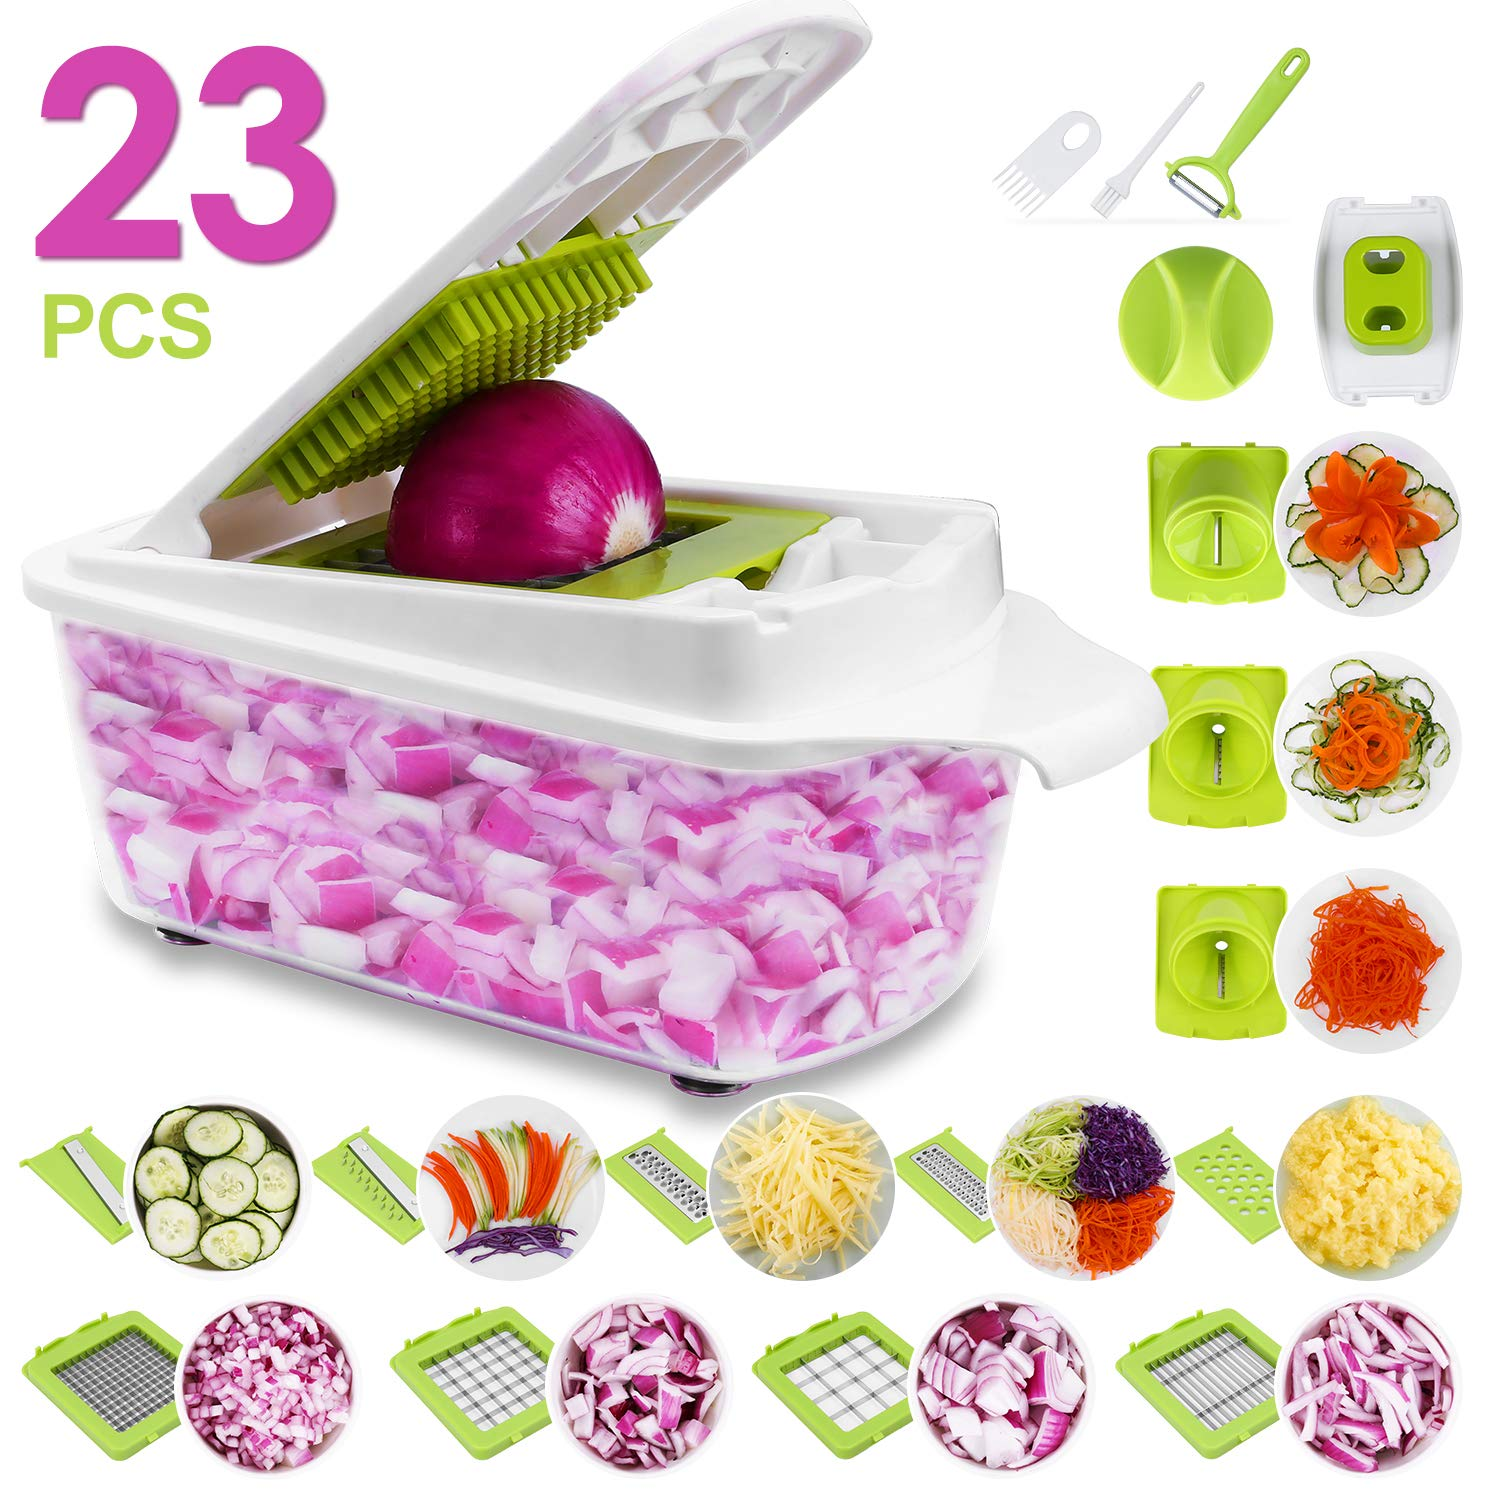 Sedhoom 23 Vegetable Chopper Generation